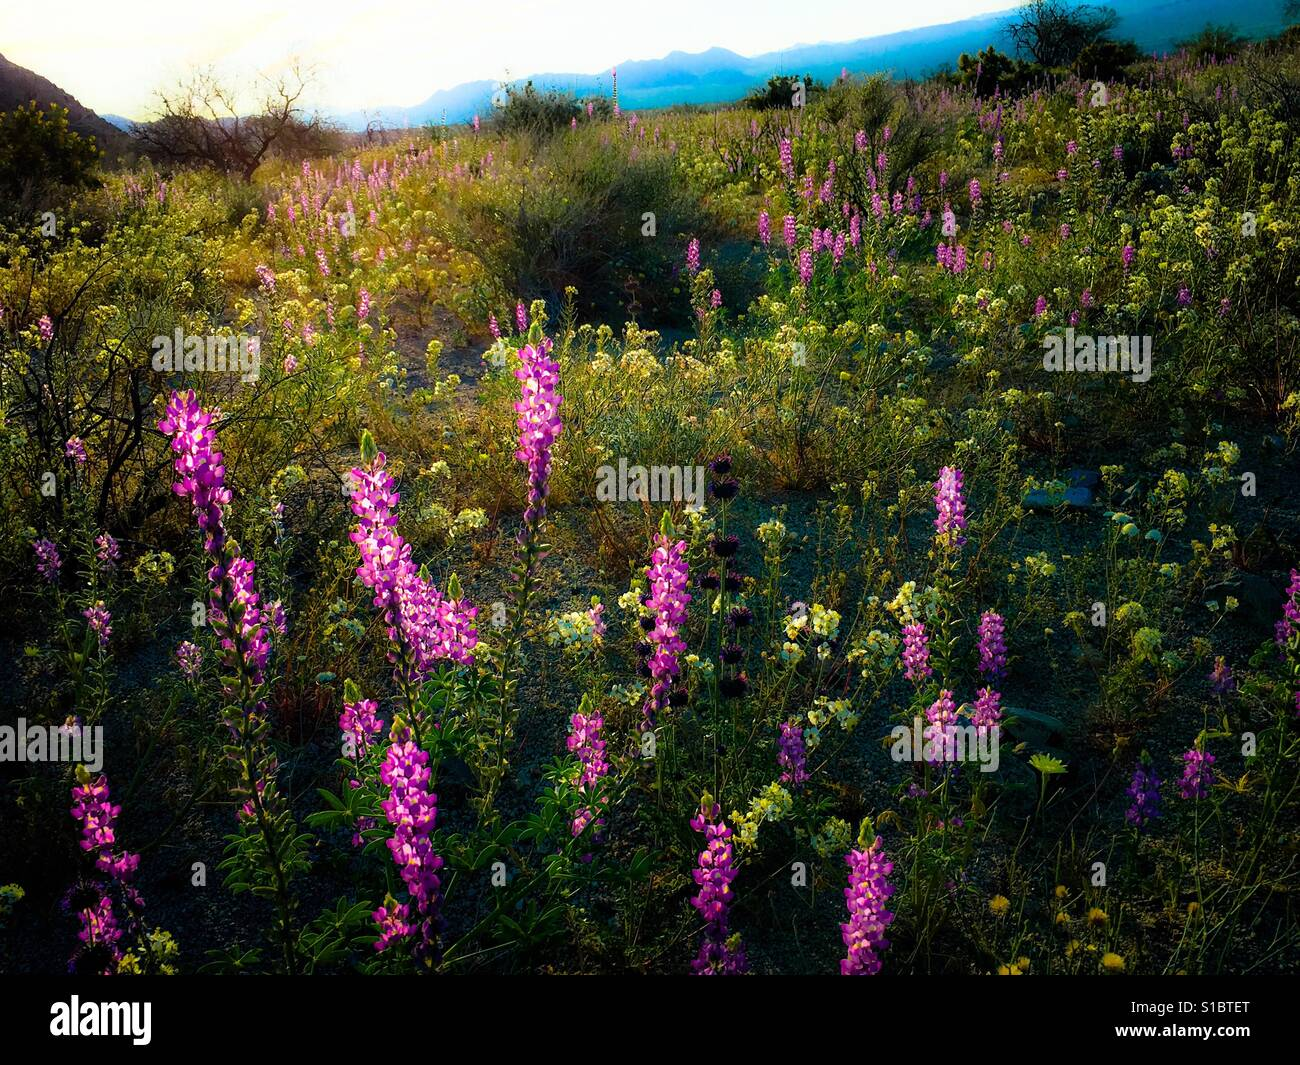 March 18, 2017 A superbloom of wildflowers after winter rains at Joshua Tree National Park in Southern California, - Stock Image